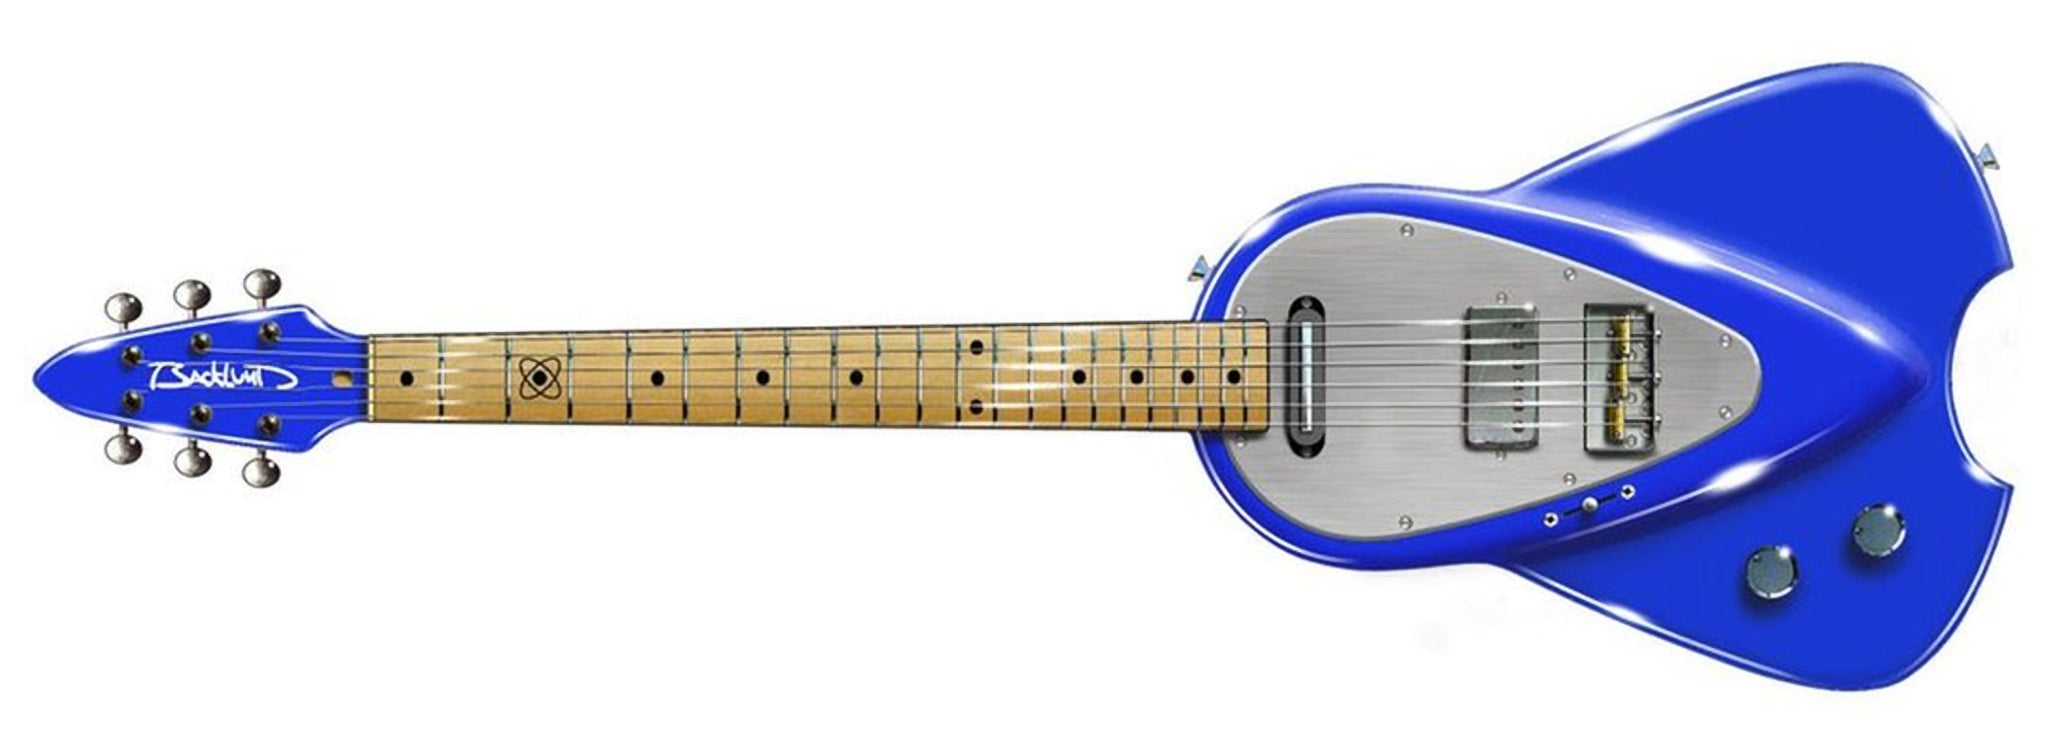 Backlund Marz 6 LH - Metallic Blue